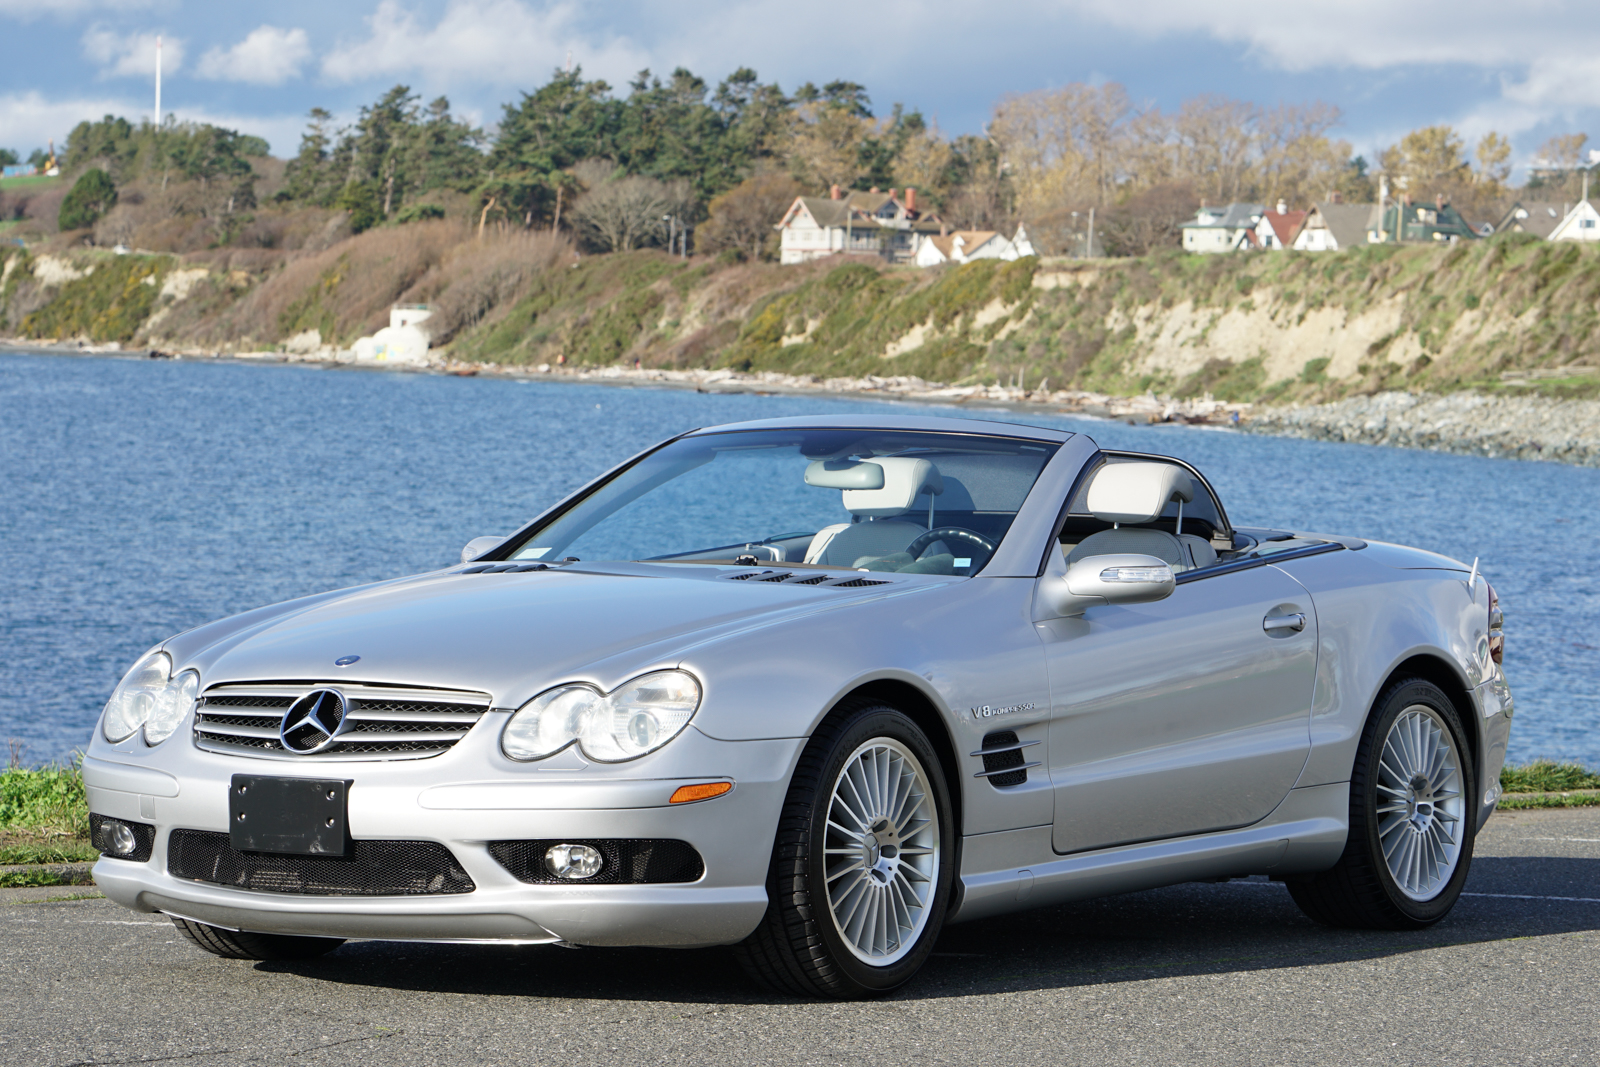 2004 mercedes benz sl55 amg silver arrow cars ltd for Mercedes benz silver